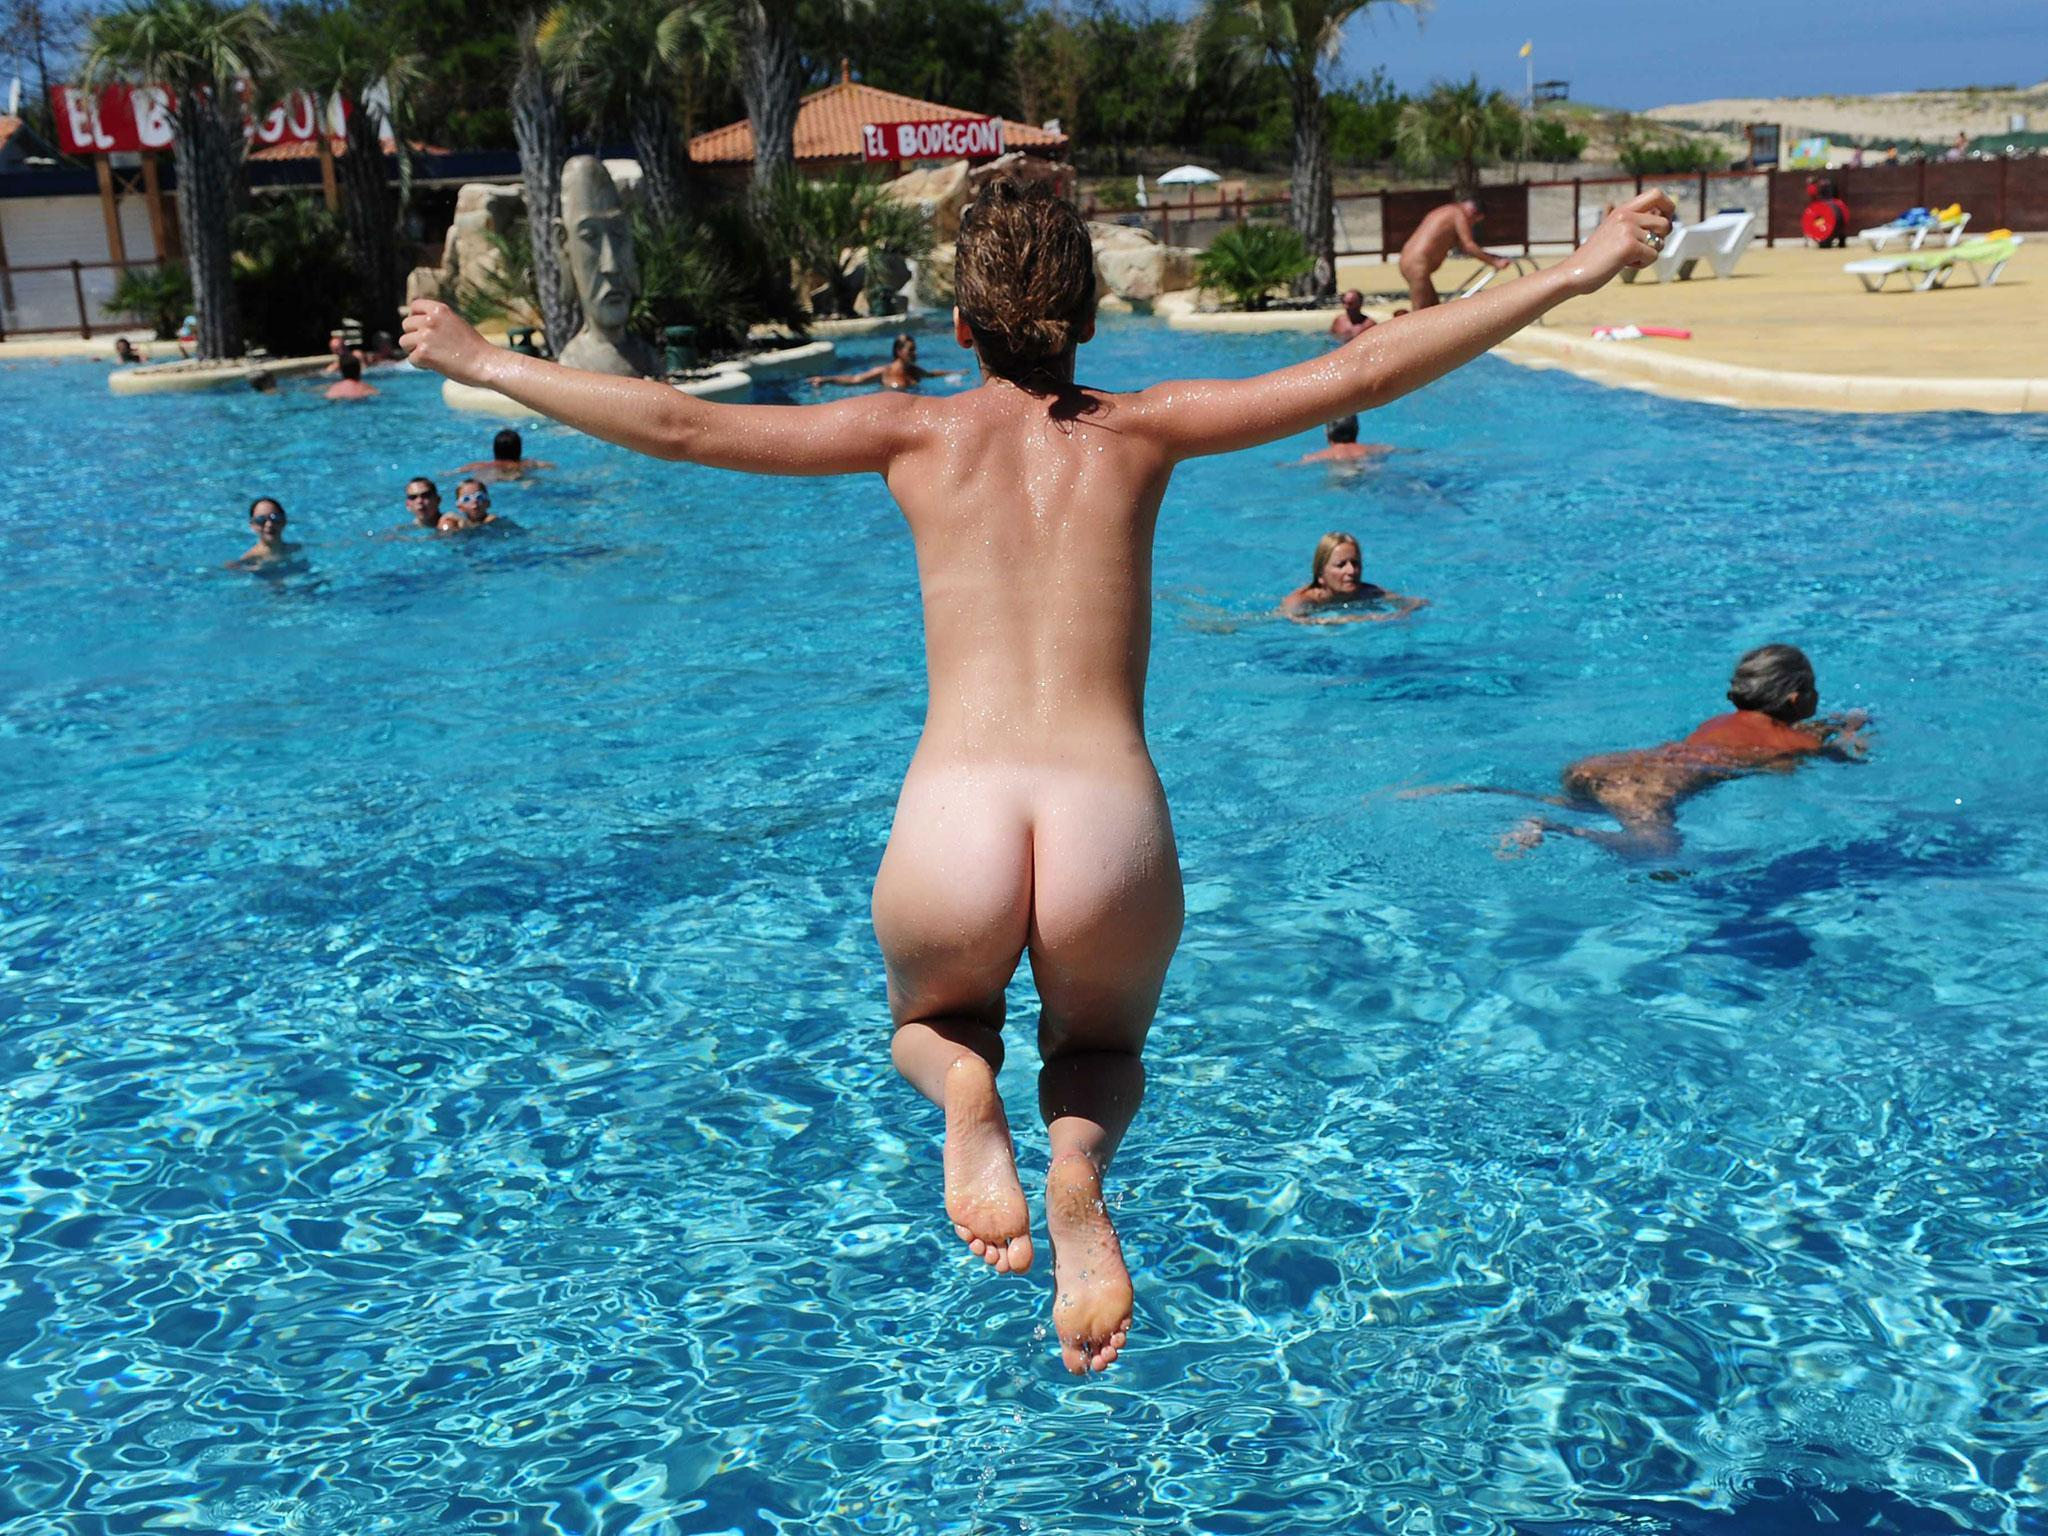 How To Get Naked In France - TripSavvy